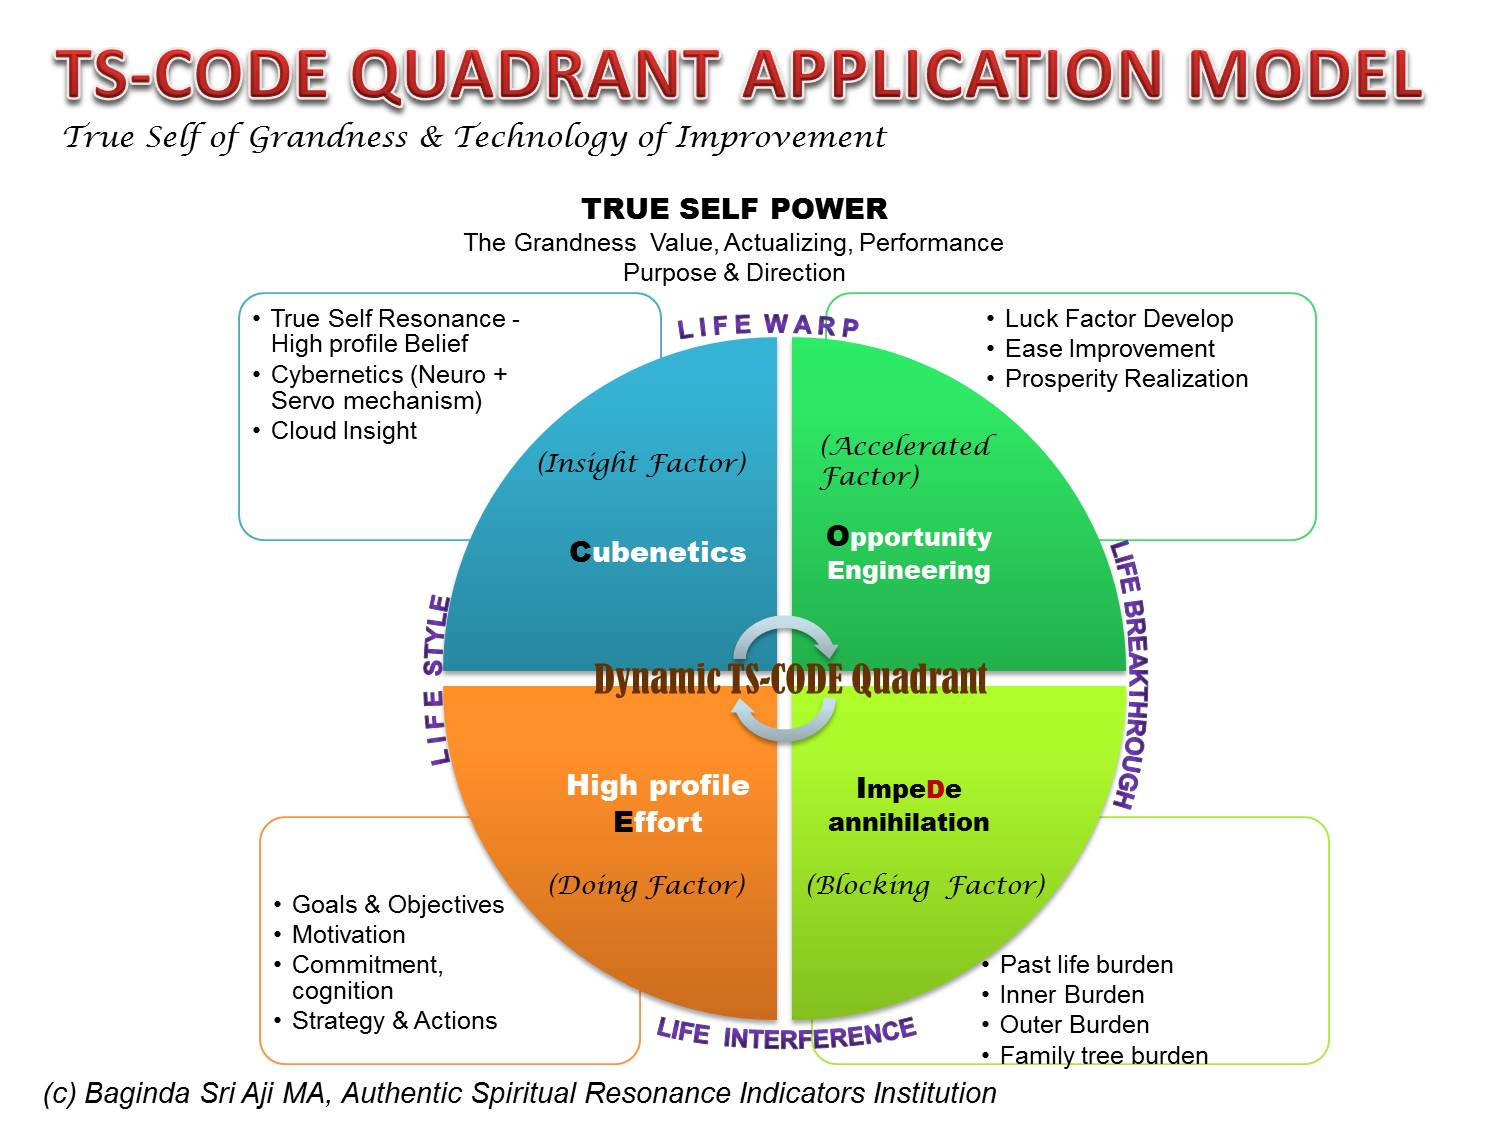 TSCODEQuadrantApplicationModel